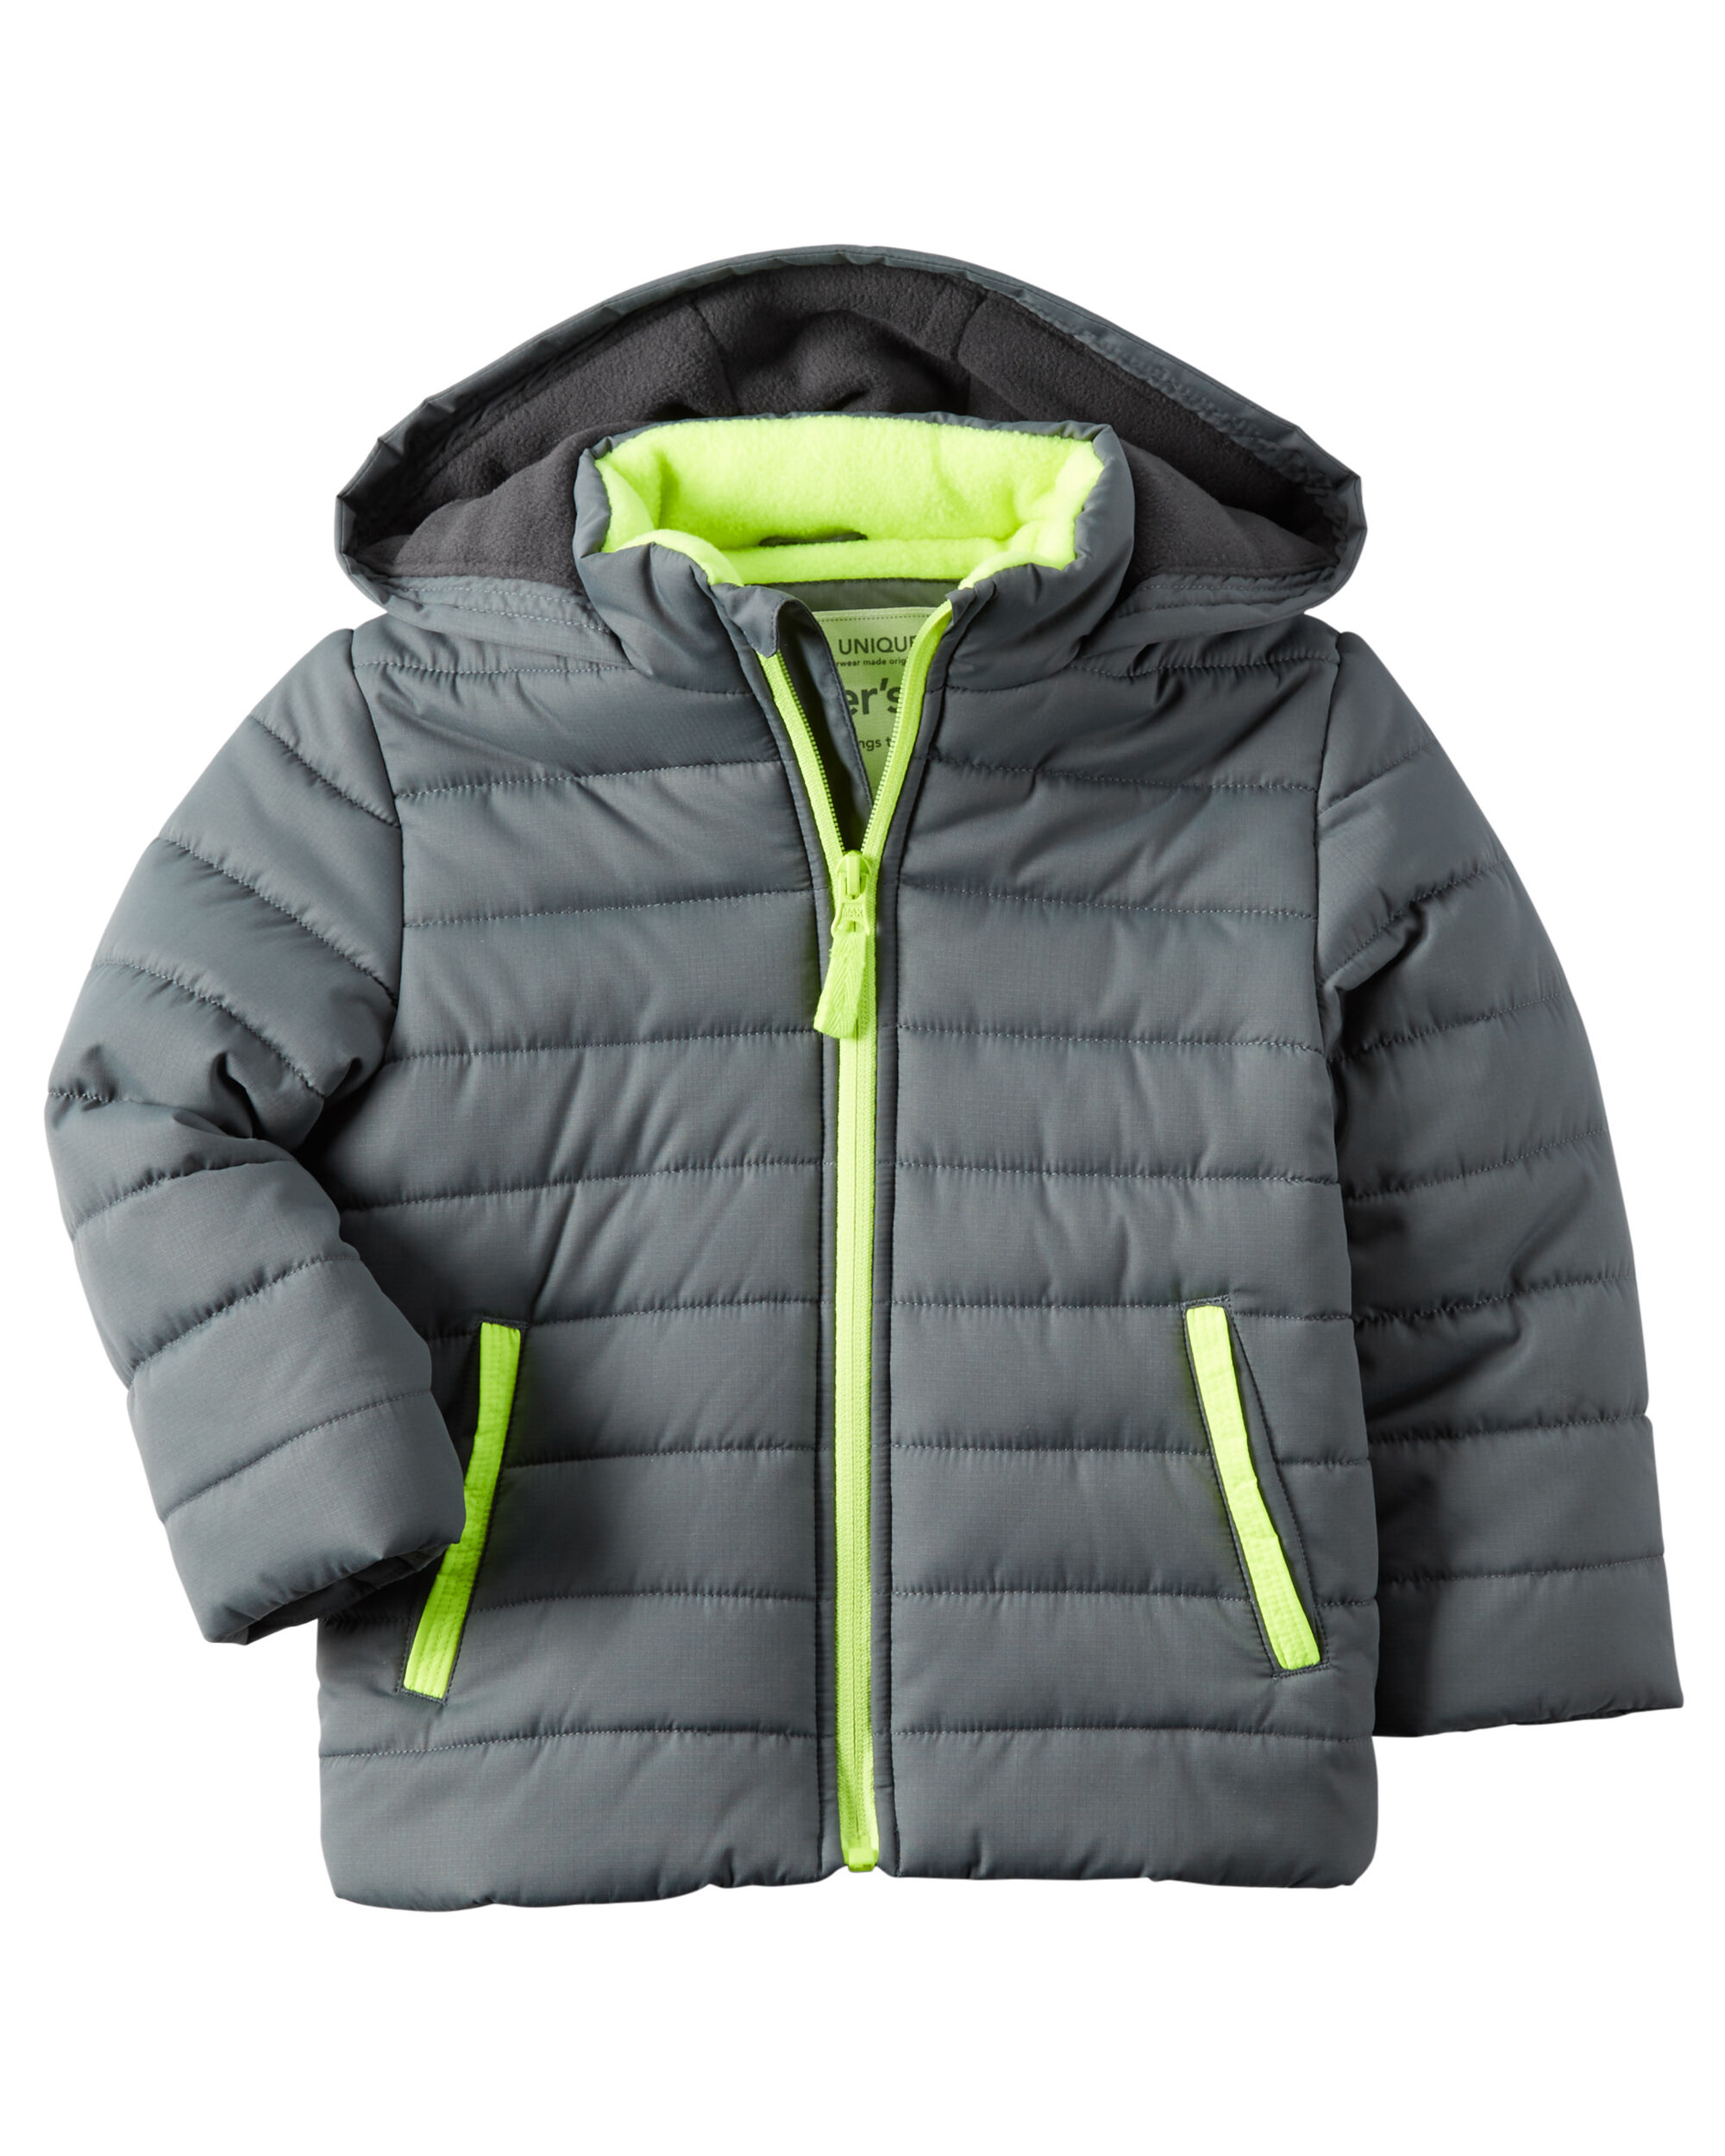 fleece lined puffer jacket carters #0: c sw 2000